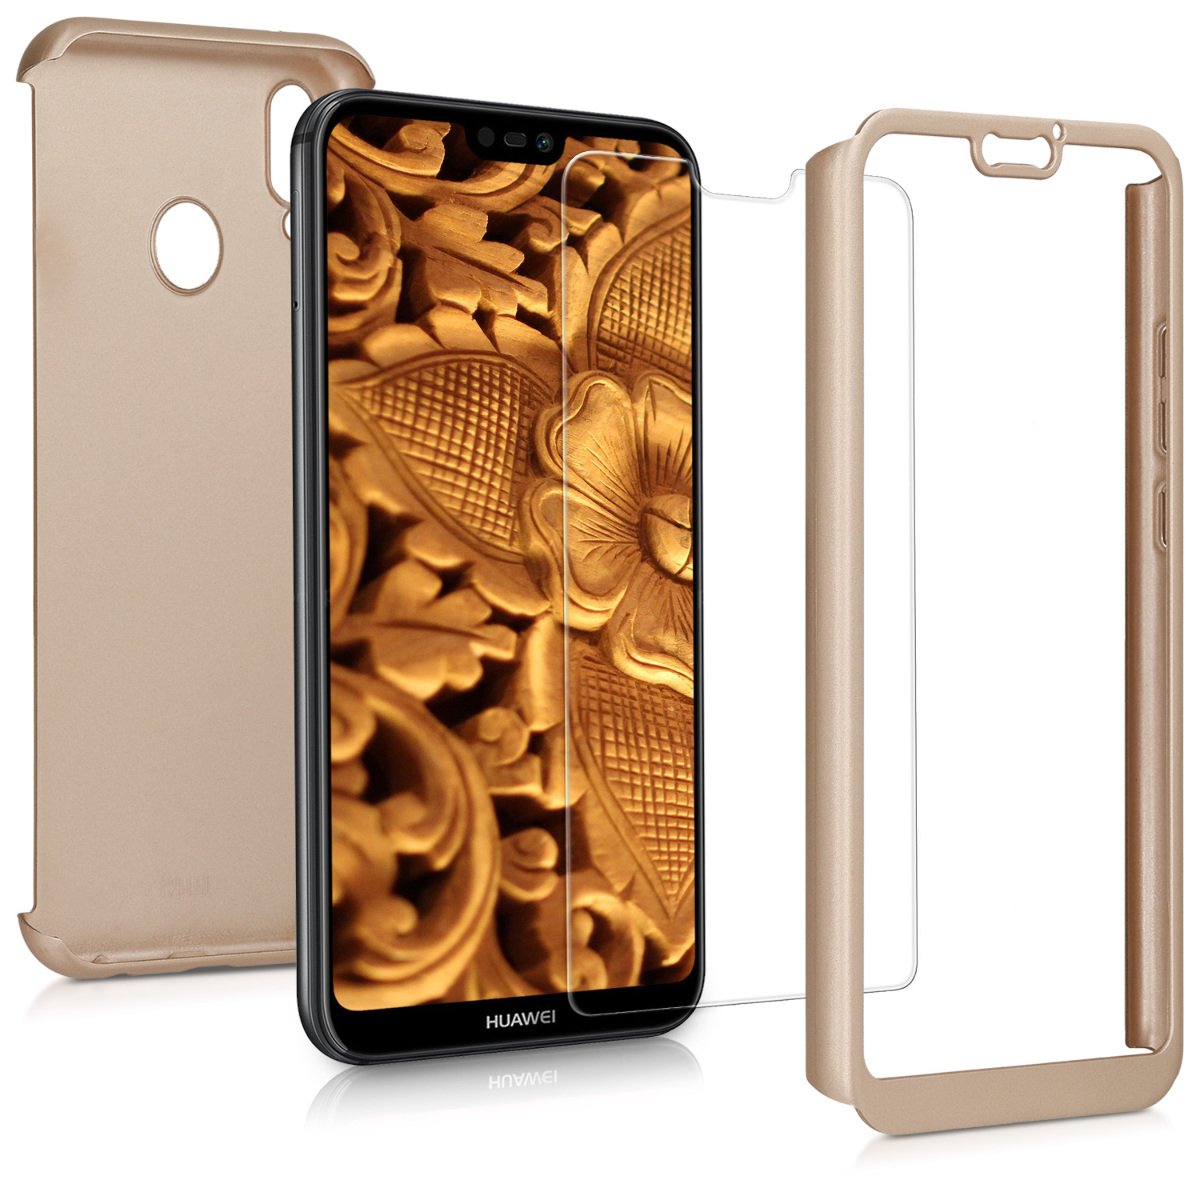 KW Θήκη Full Body Huawei P20 Lite & Tempered Glass - Metallic Gold (44888.66)